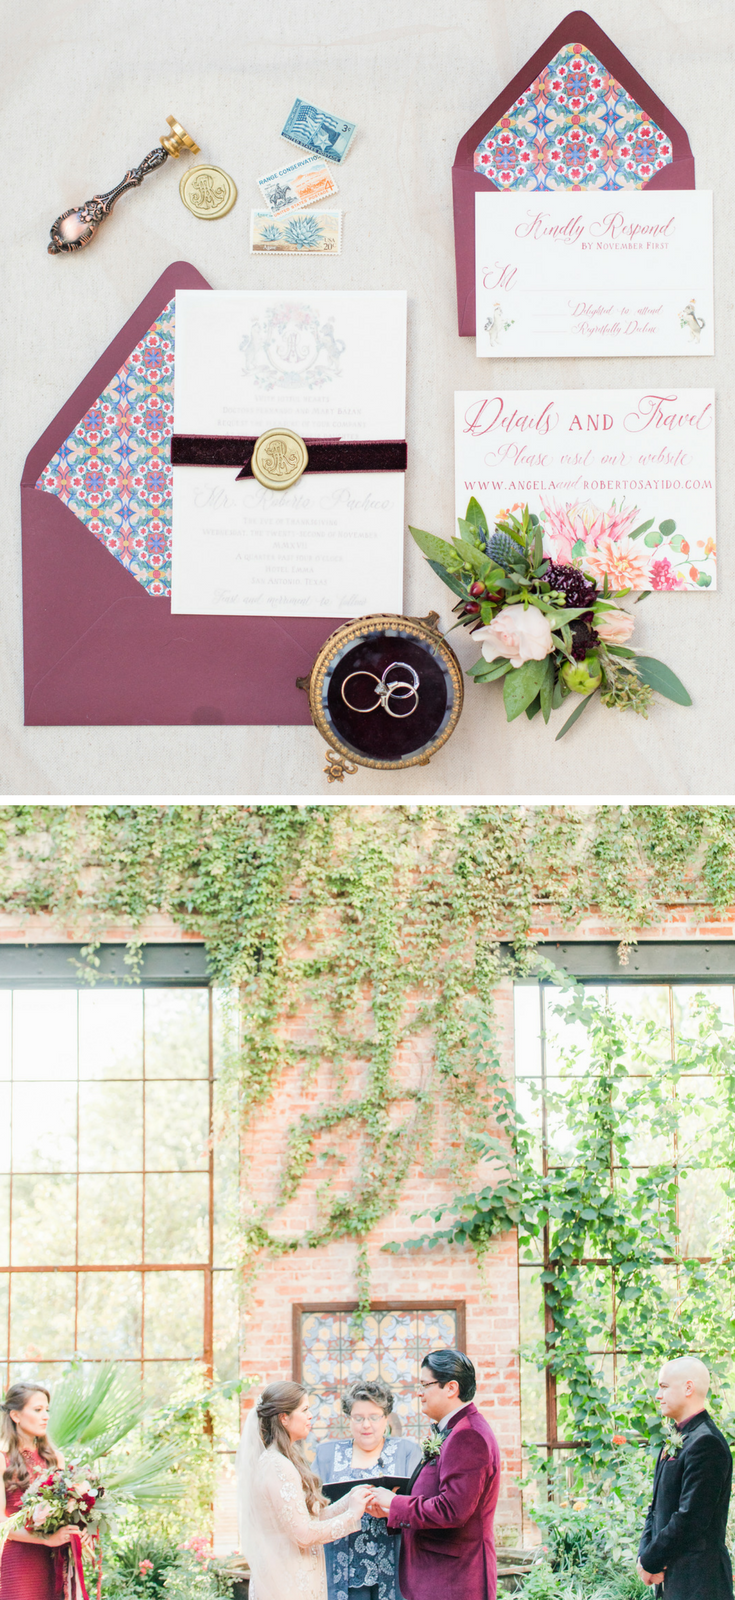 Fall Hotel Emma Wedding Details - San Antonio, Texas | Wedding Stationary Suite and Ceremony Location